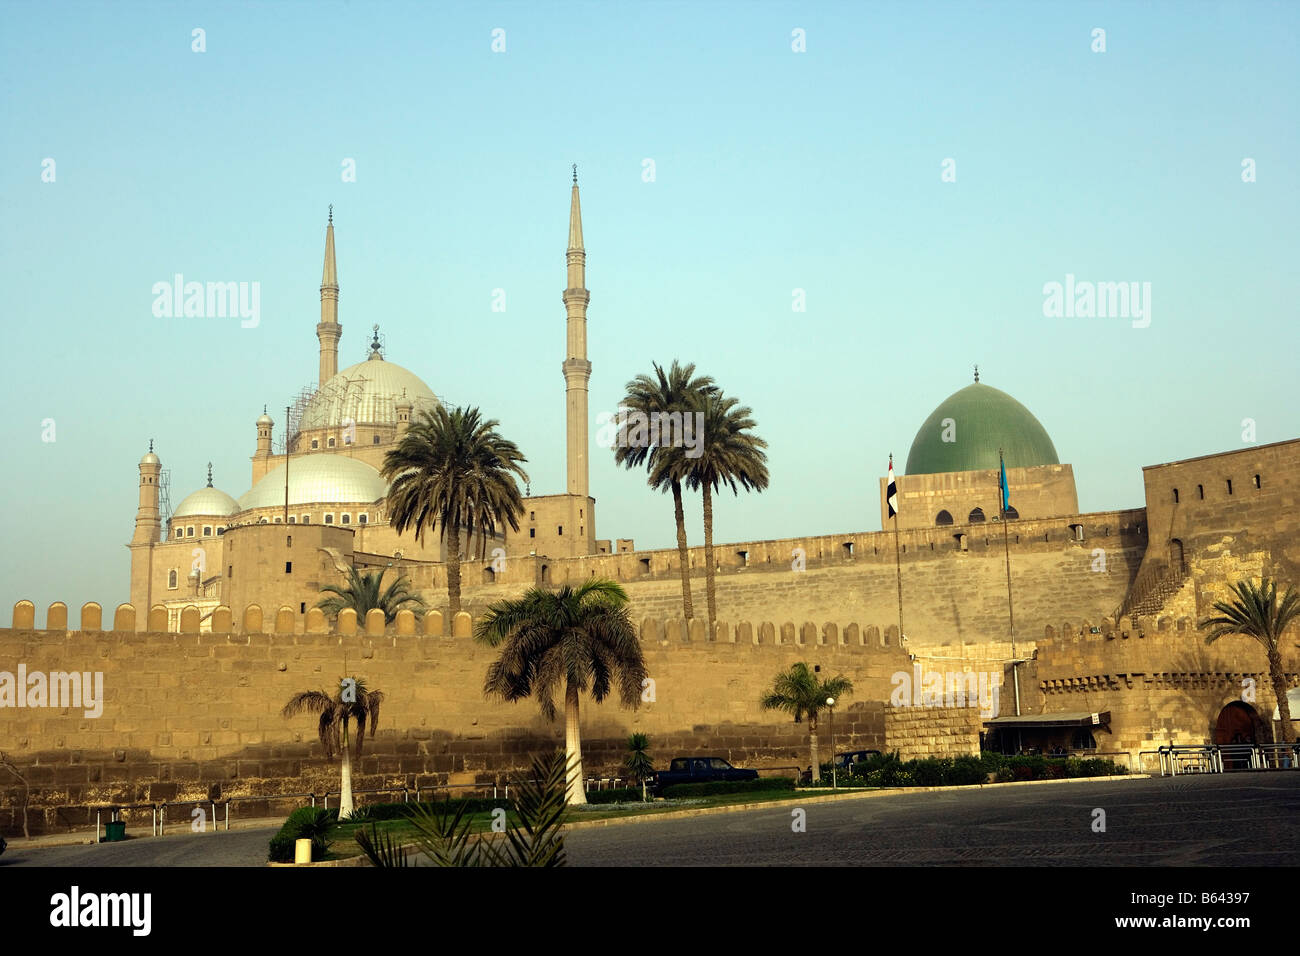 Egypt, Cairo, Islamic Cairo, Mosque - Mosque of Mohammed Ali - Stock Image